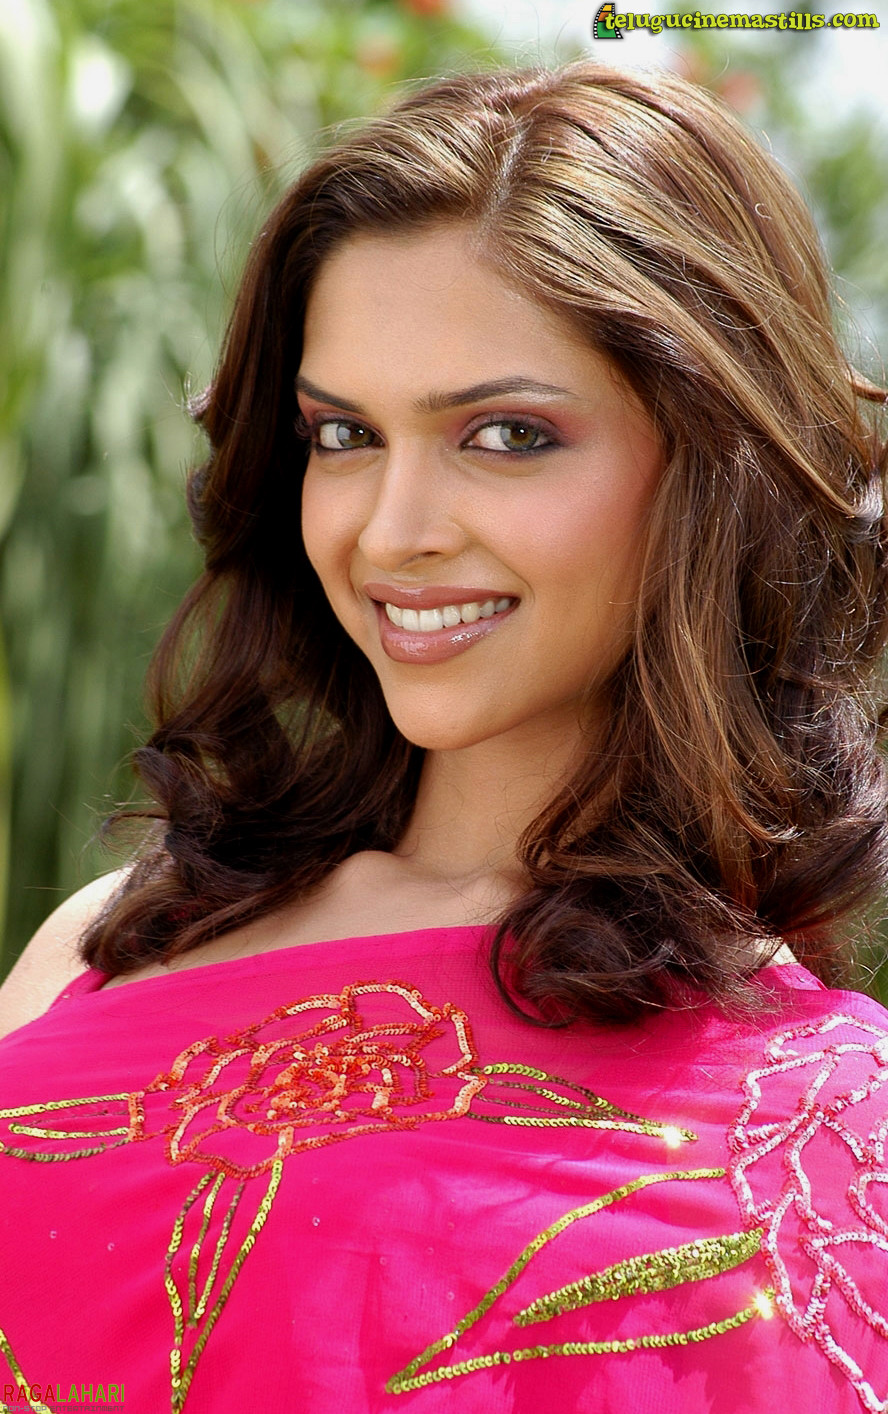 bollywood movies: bollywood movies wallpaper deepika padukone